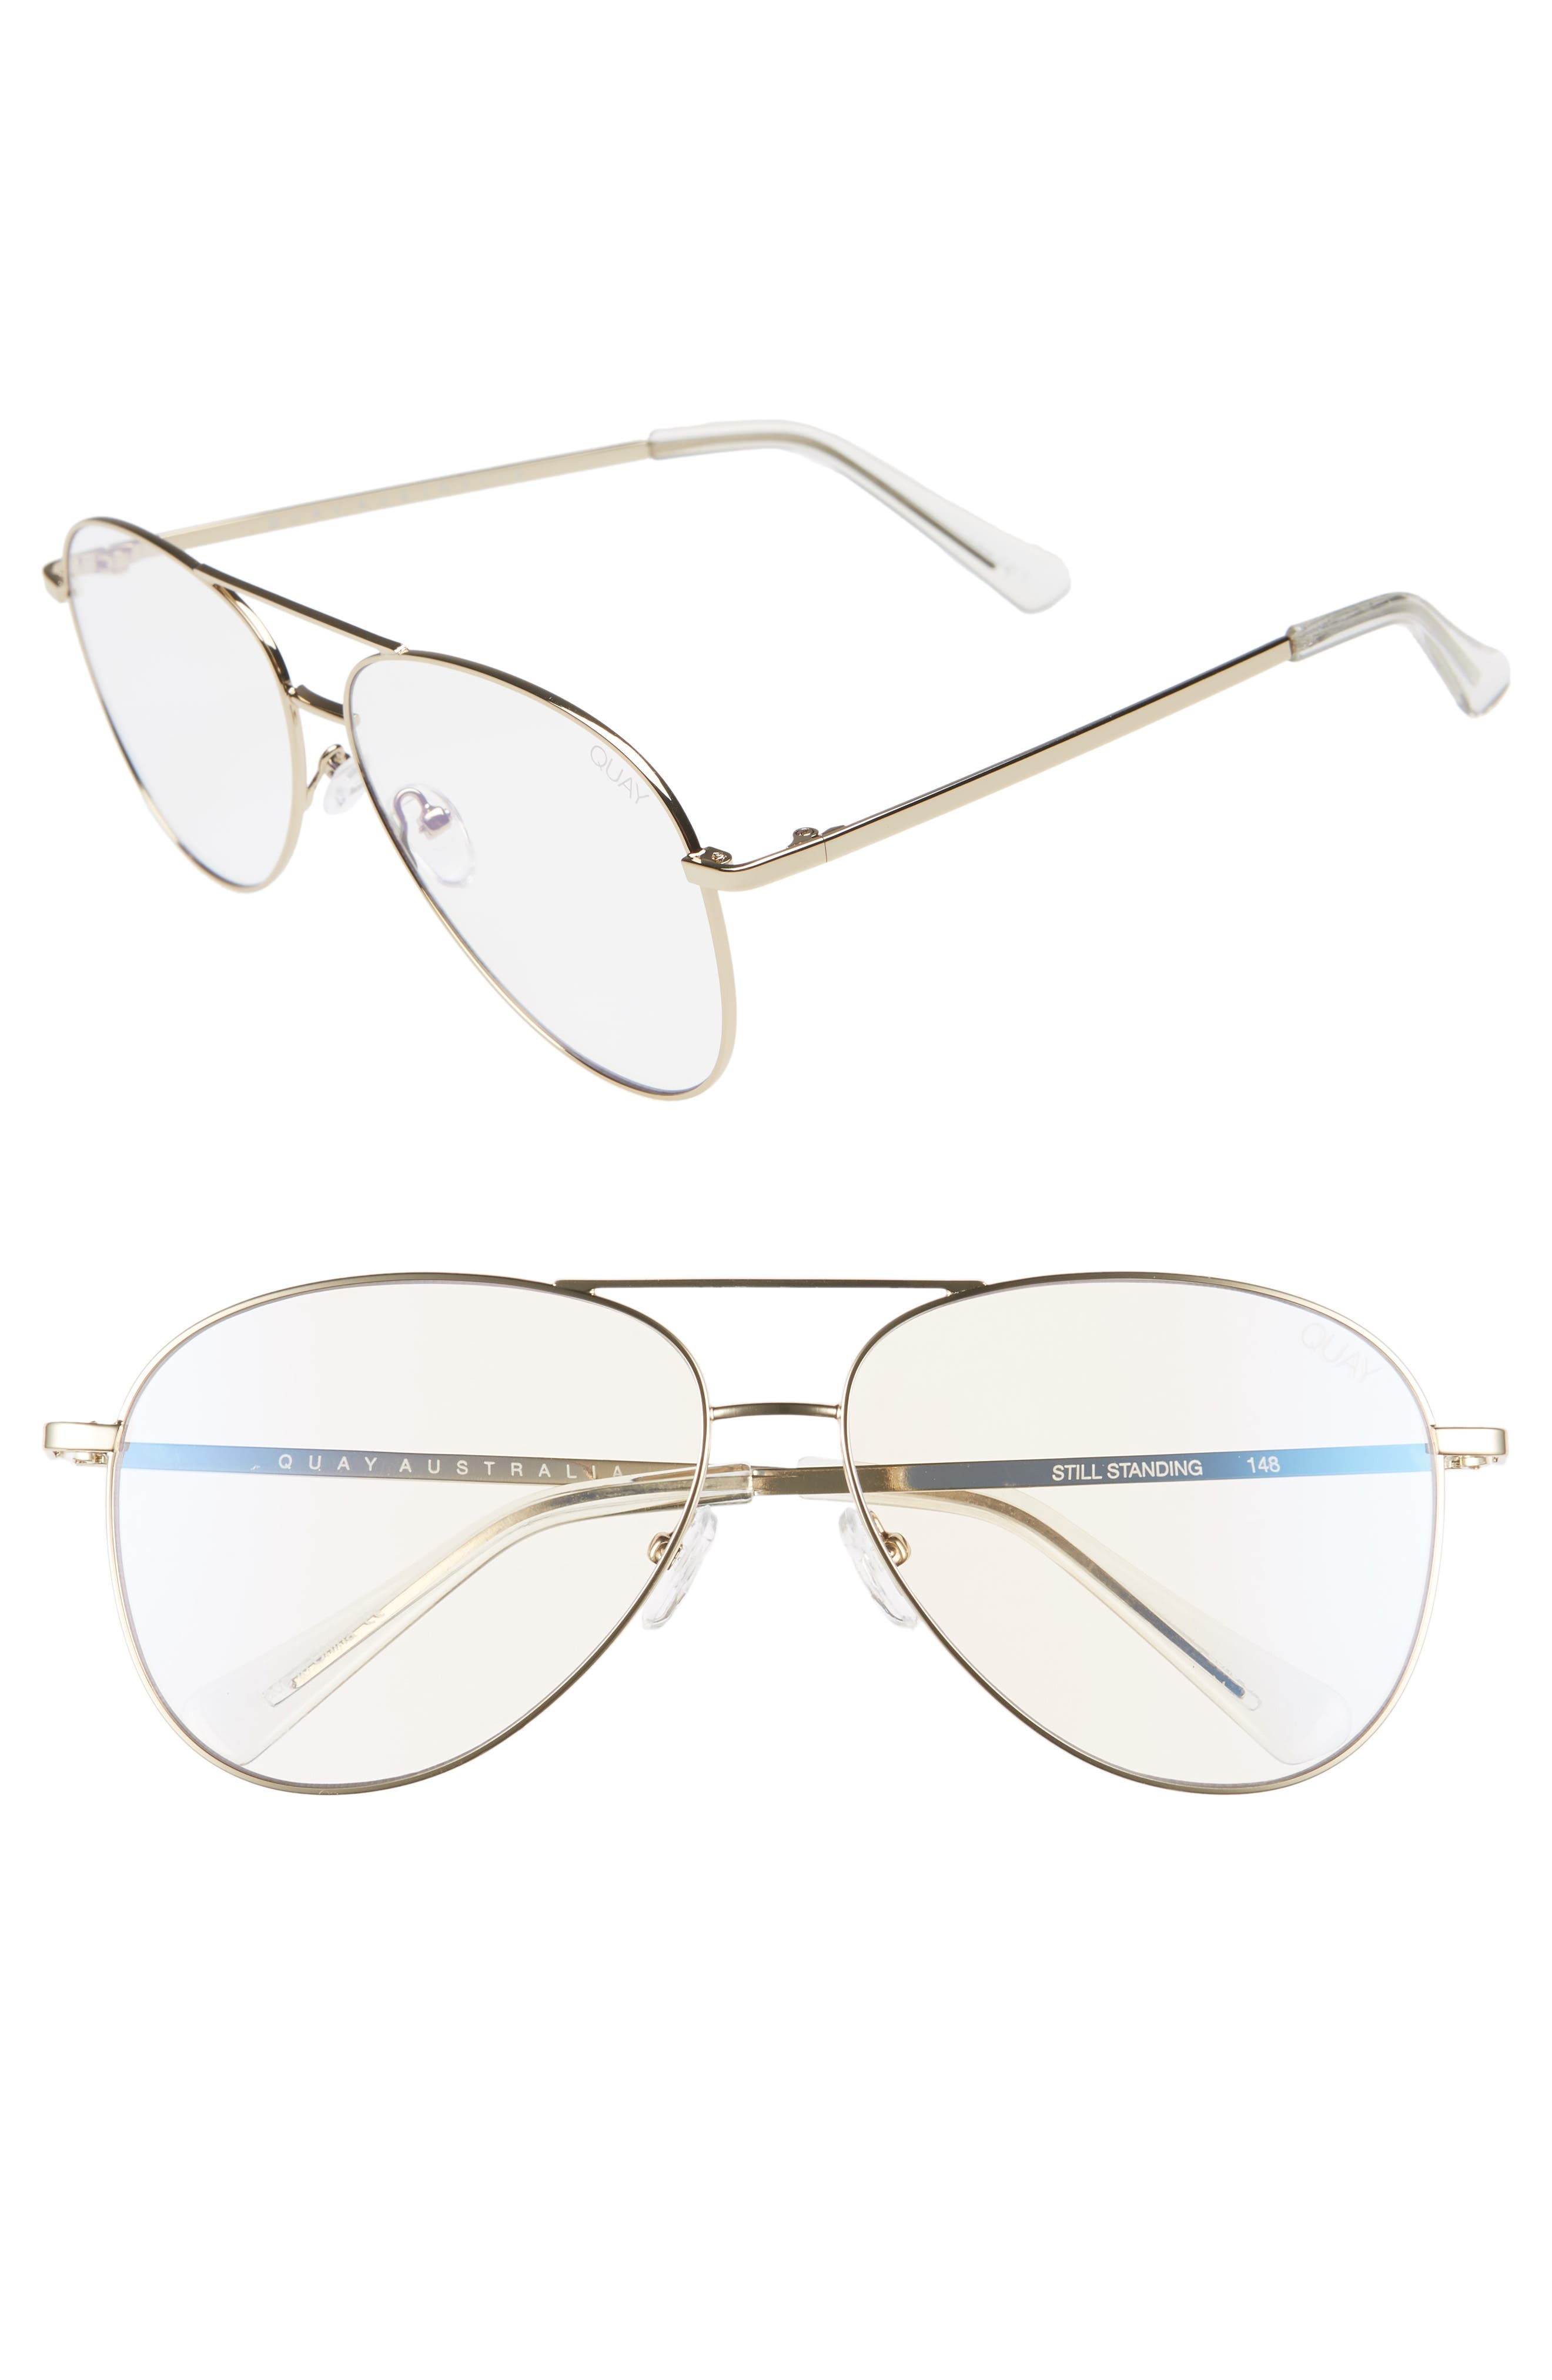 Still Standing 58Mm Aviator Fashion Glasses - Gold / Clear Blue Light